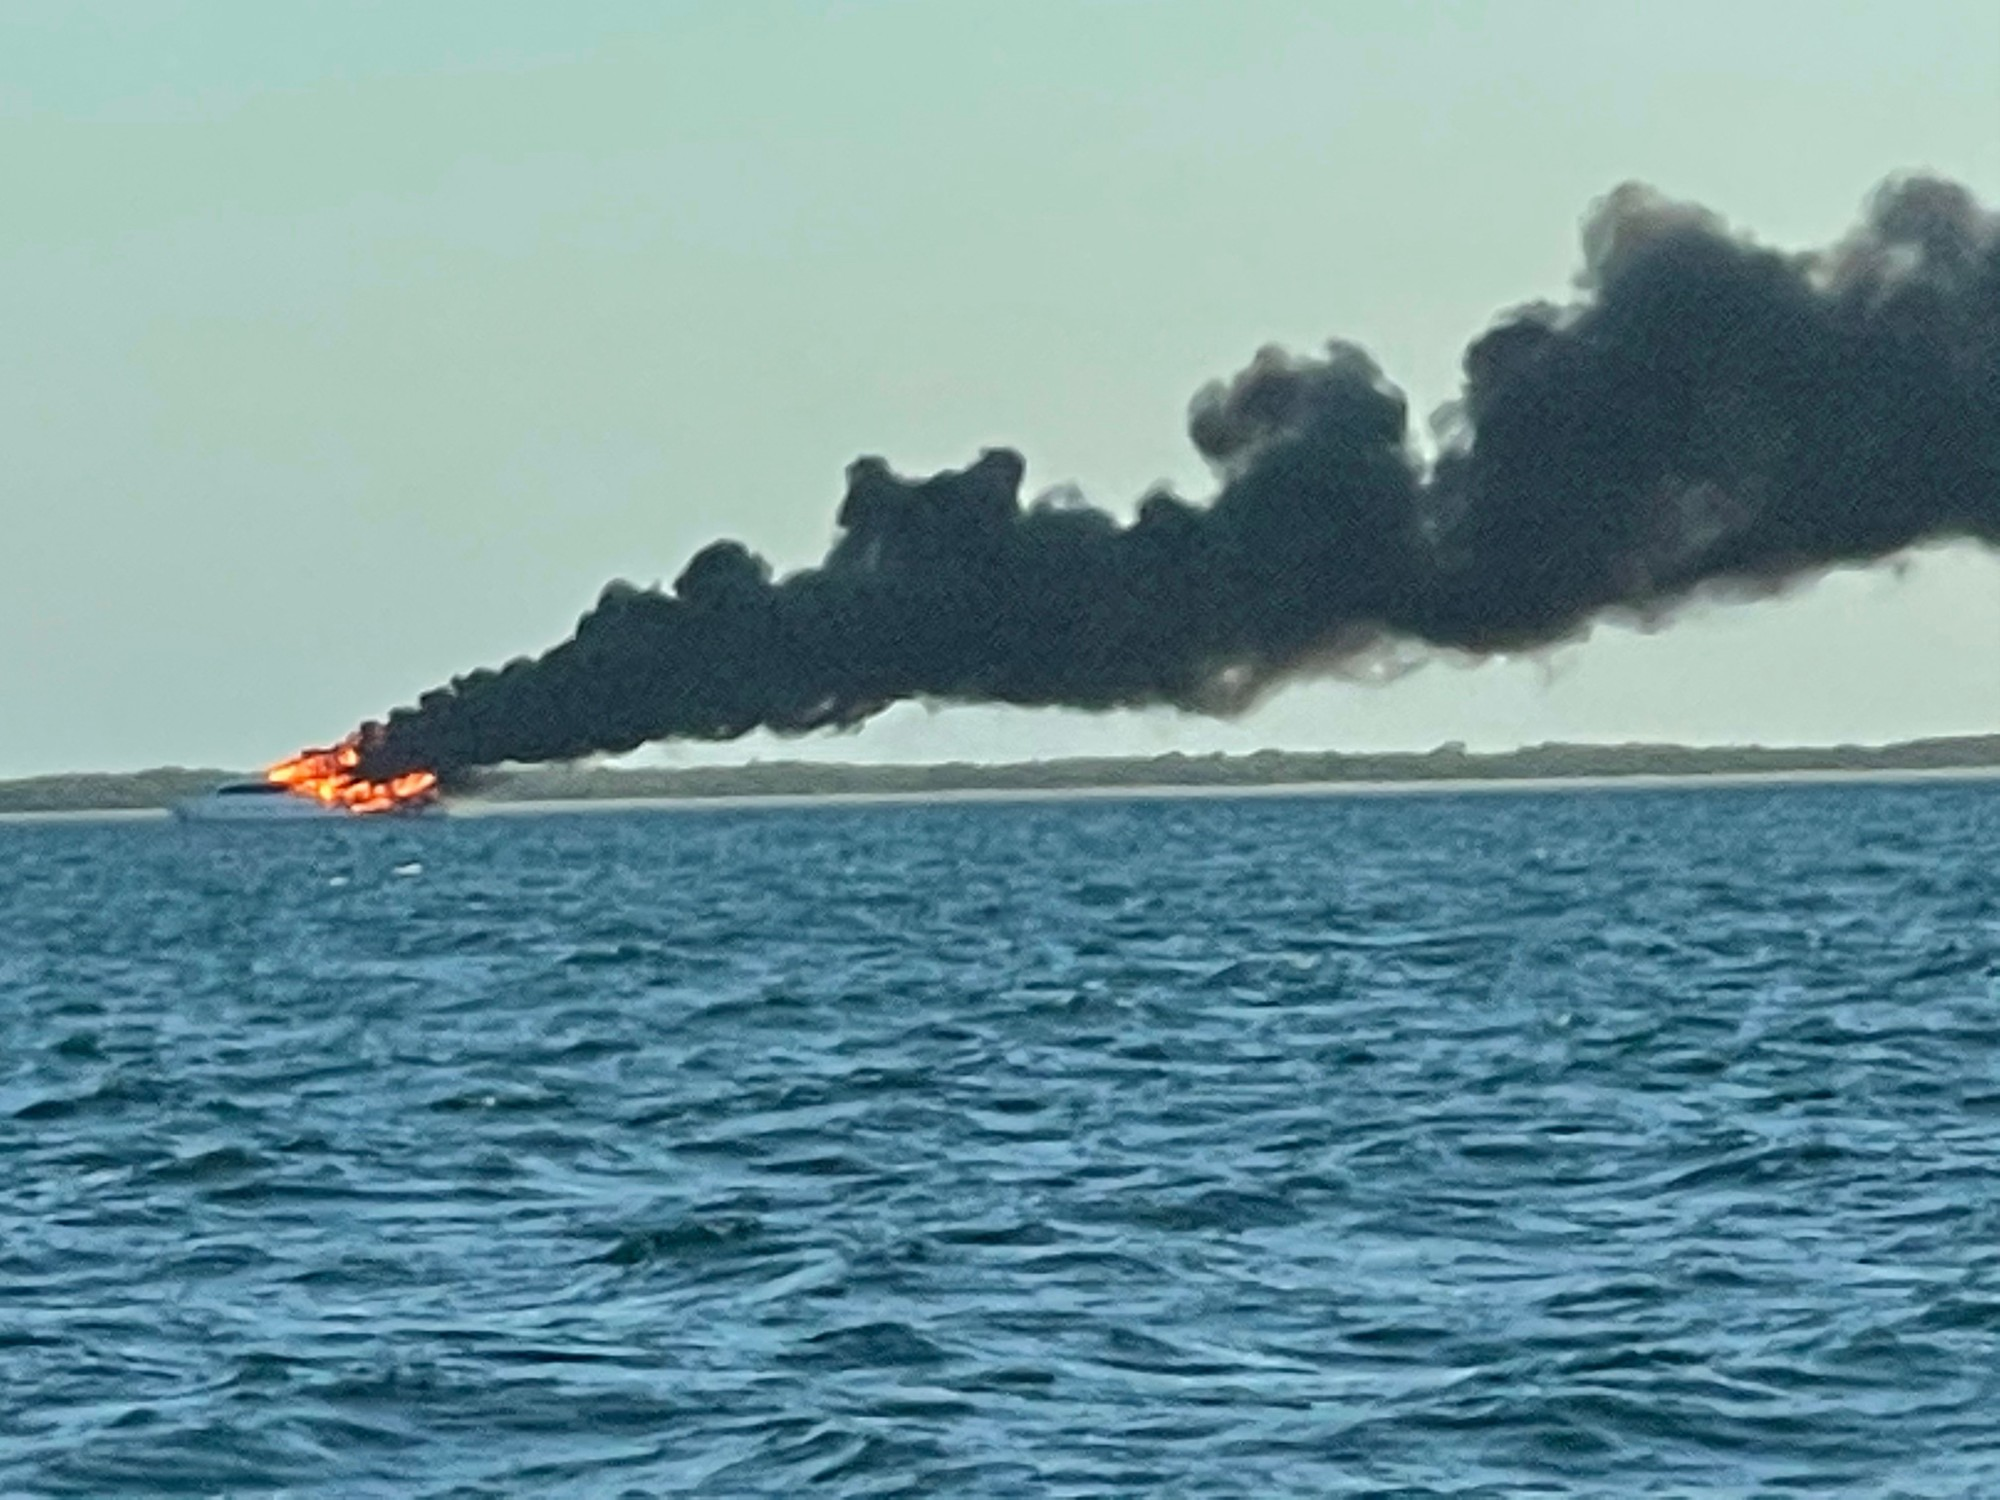 Coast Guard oversees diesel spill clean-up near Marquesas after yacht fire